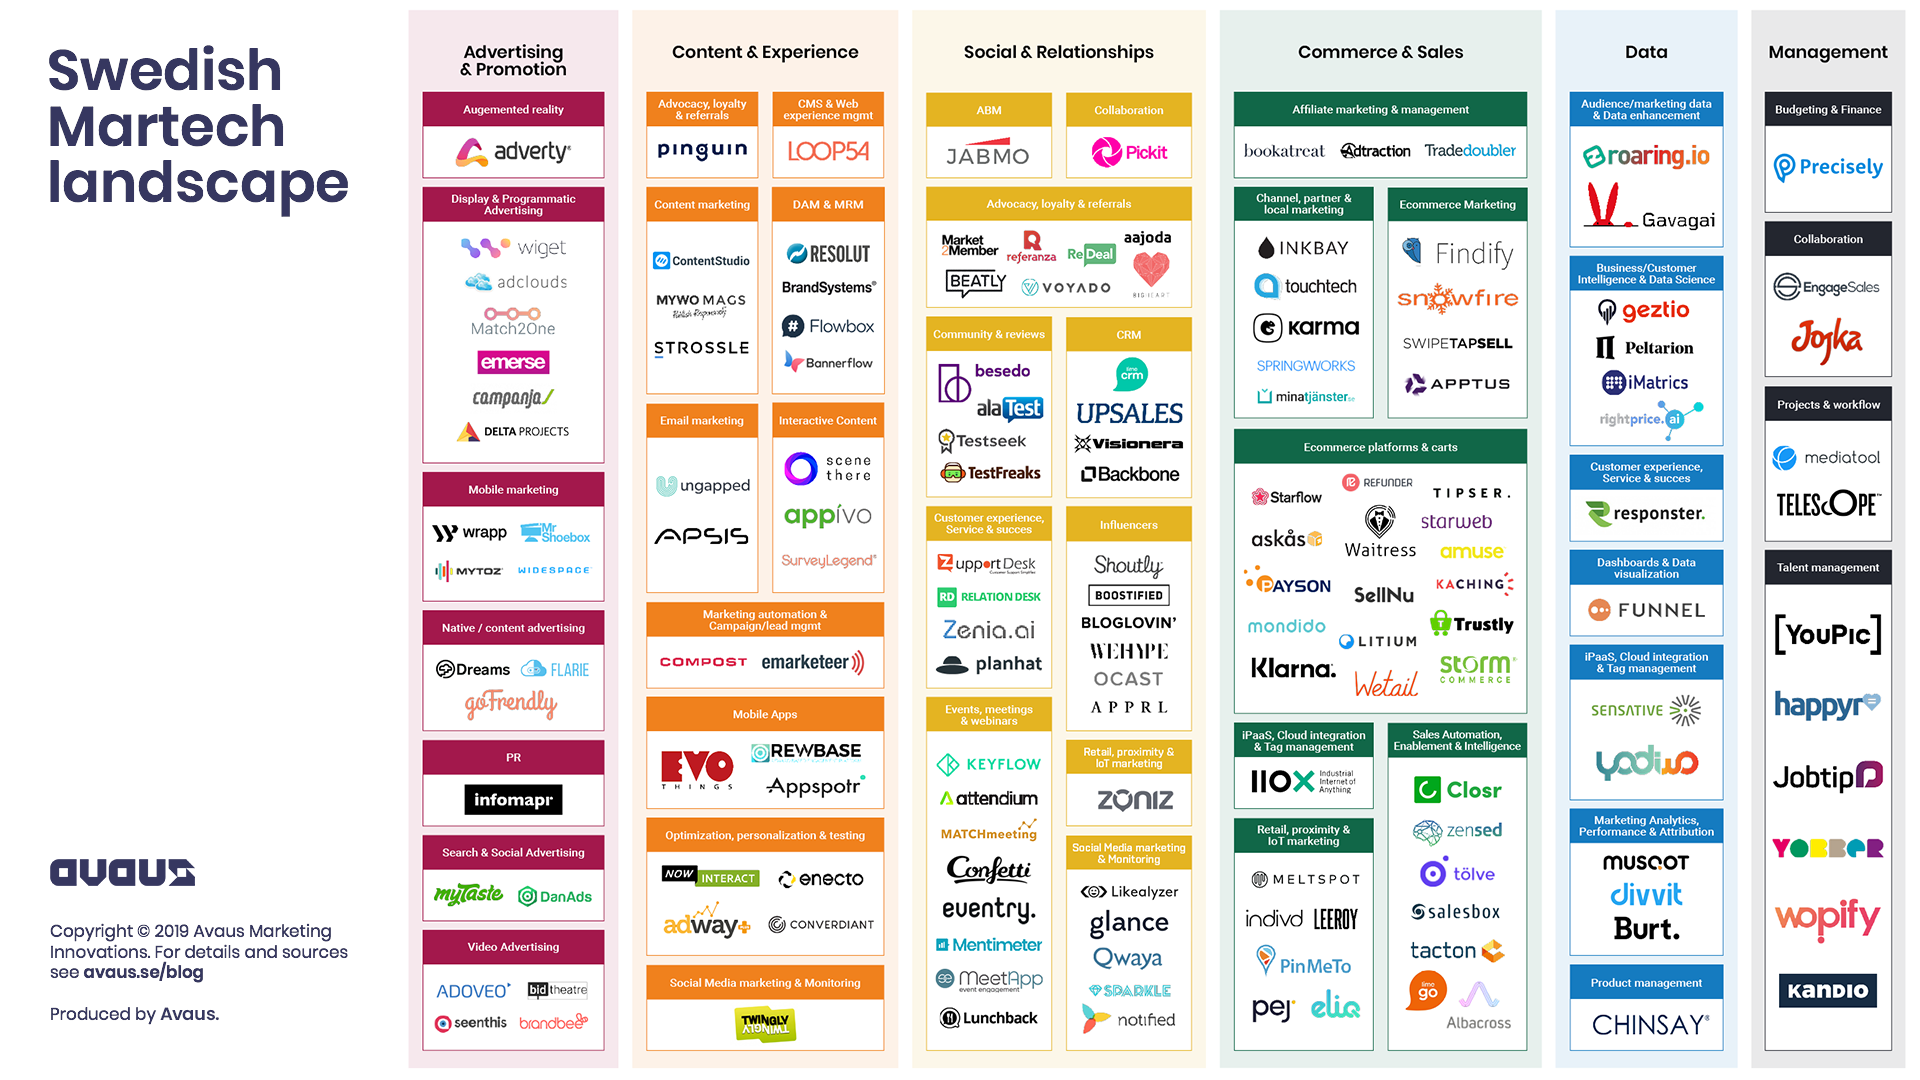 Swedish MarTech Landscape by Avaus